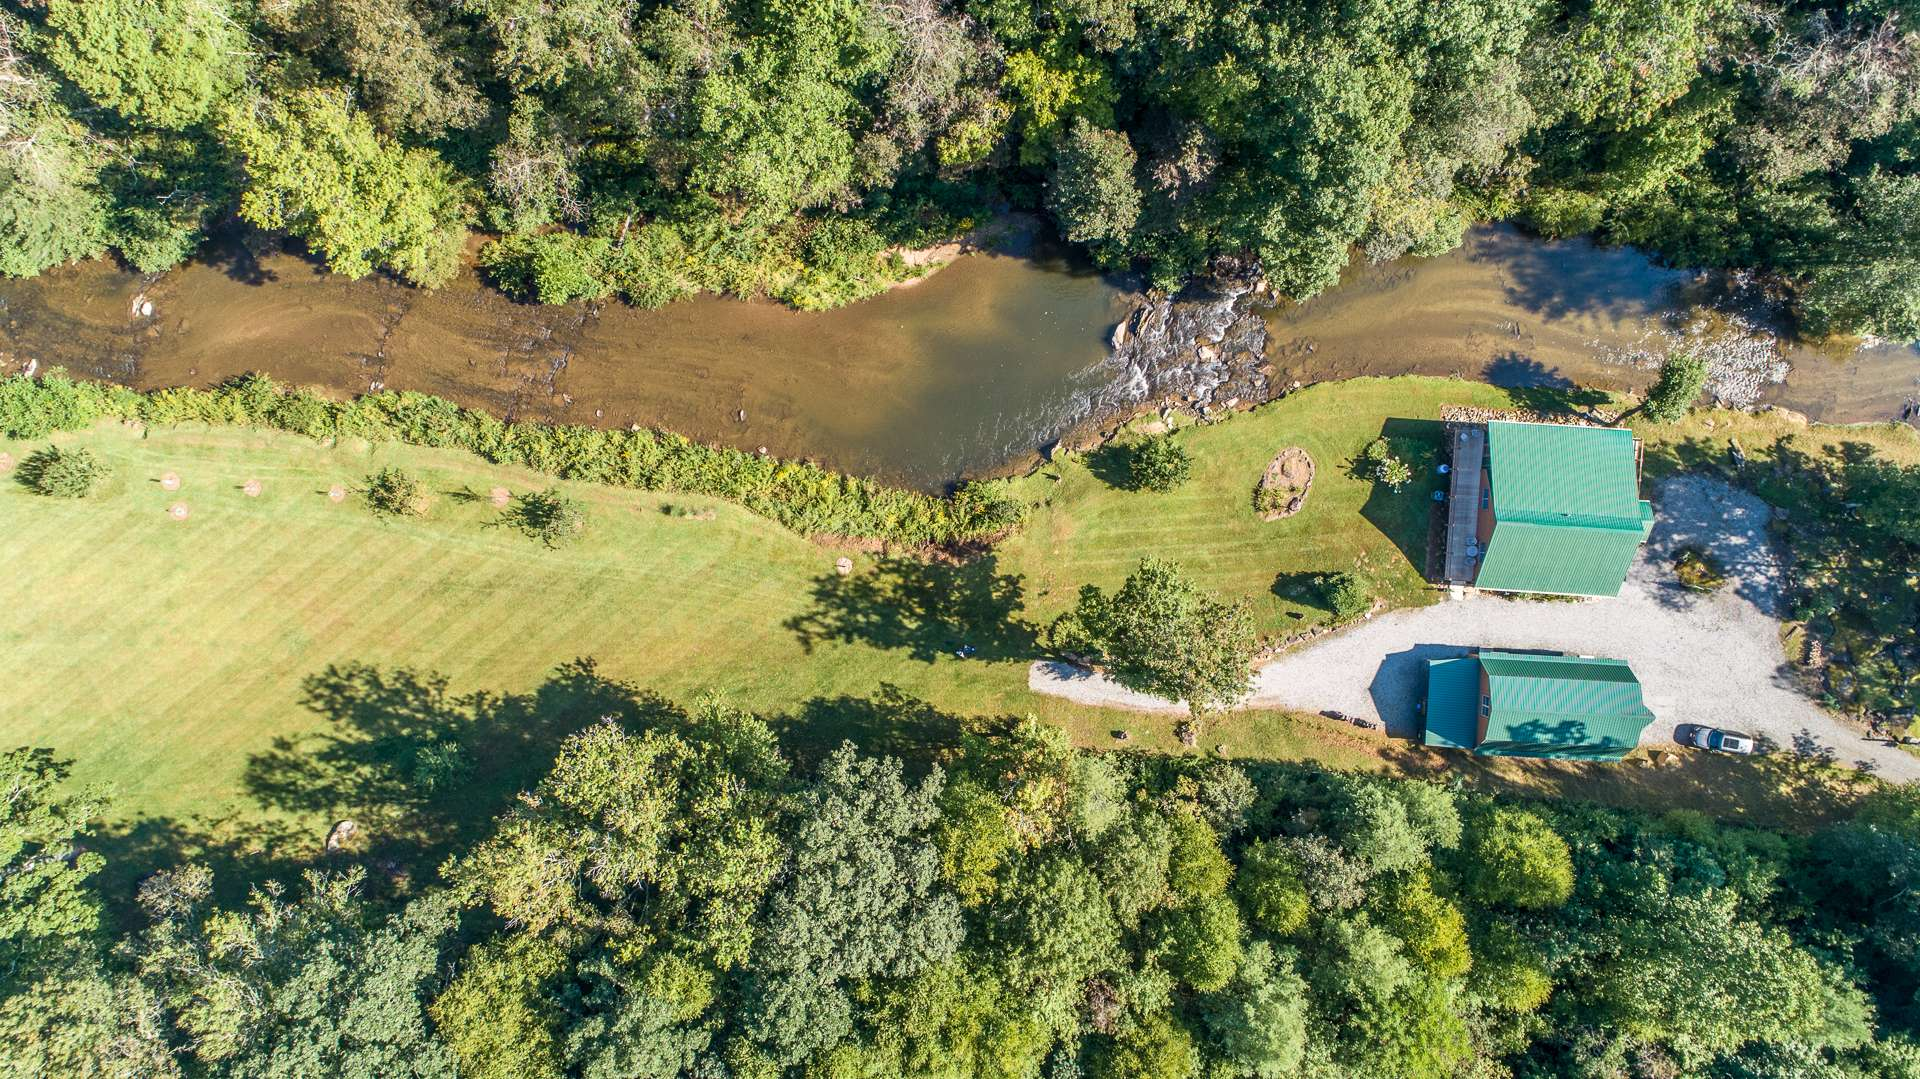 The acreage offers a nice mixture of open and fenced pastures, and serene woodlands offering multiple building sites, ATV trails, and abundant wildlife creating the perfect fishing and hunting retreat, or great horse property.